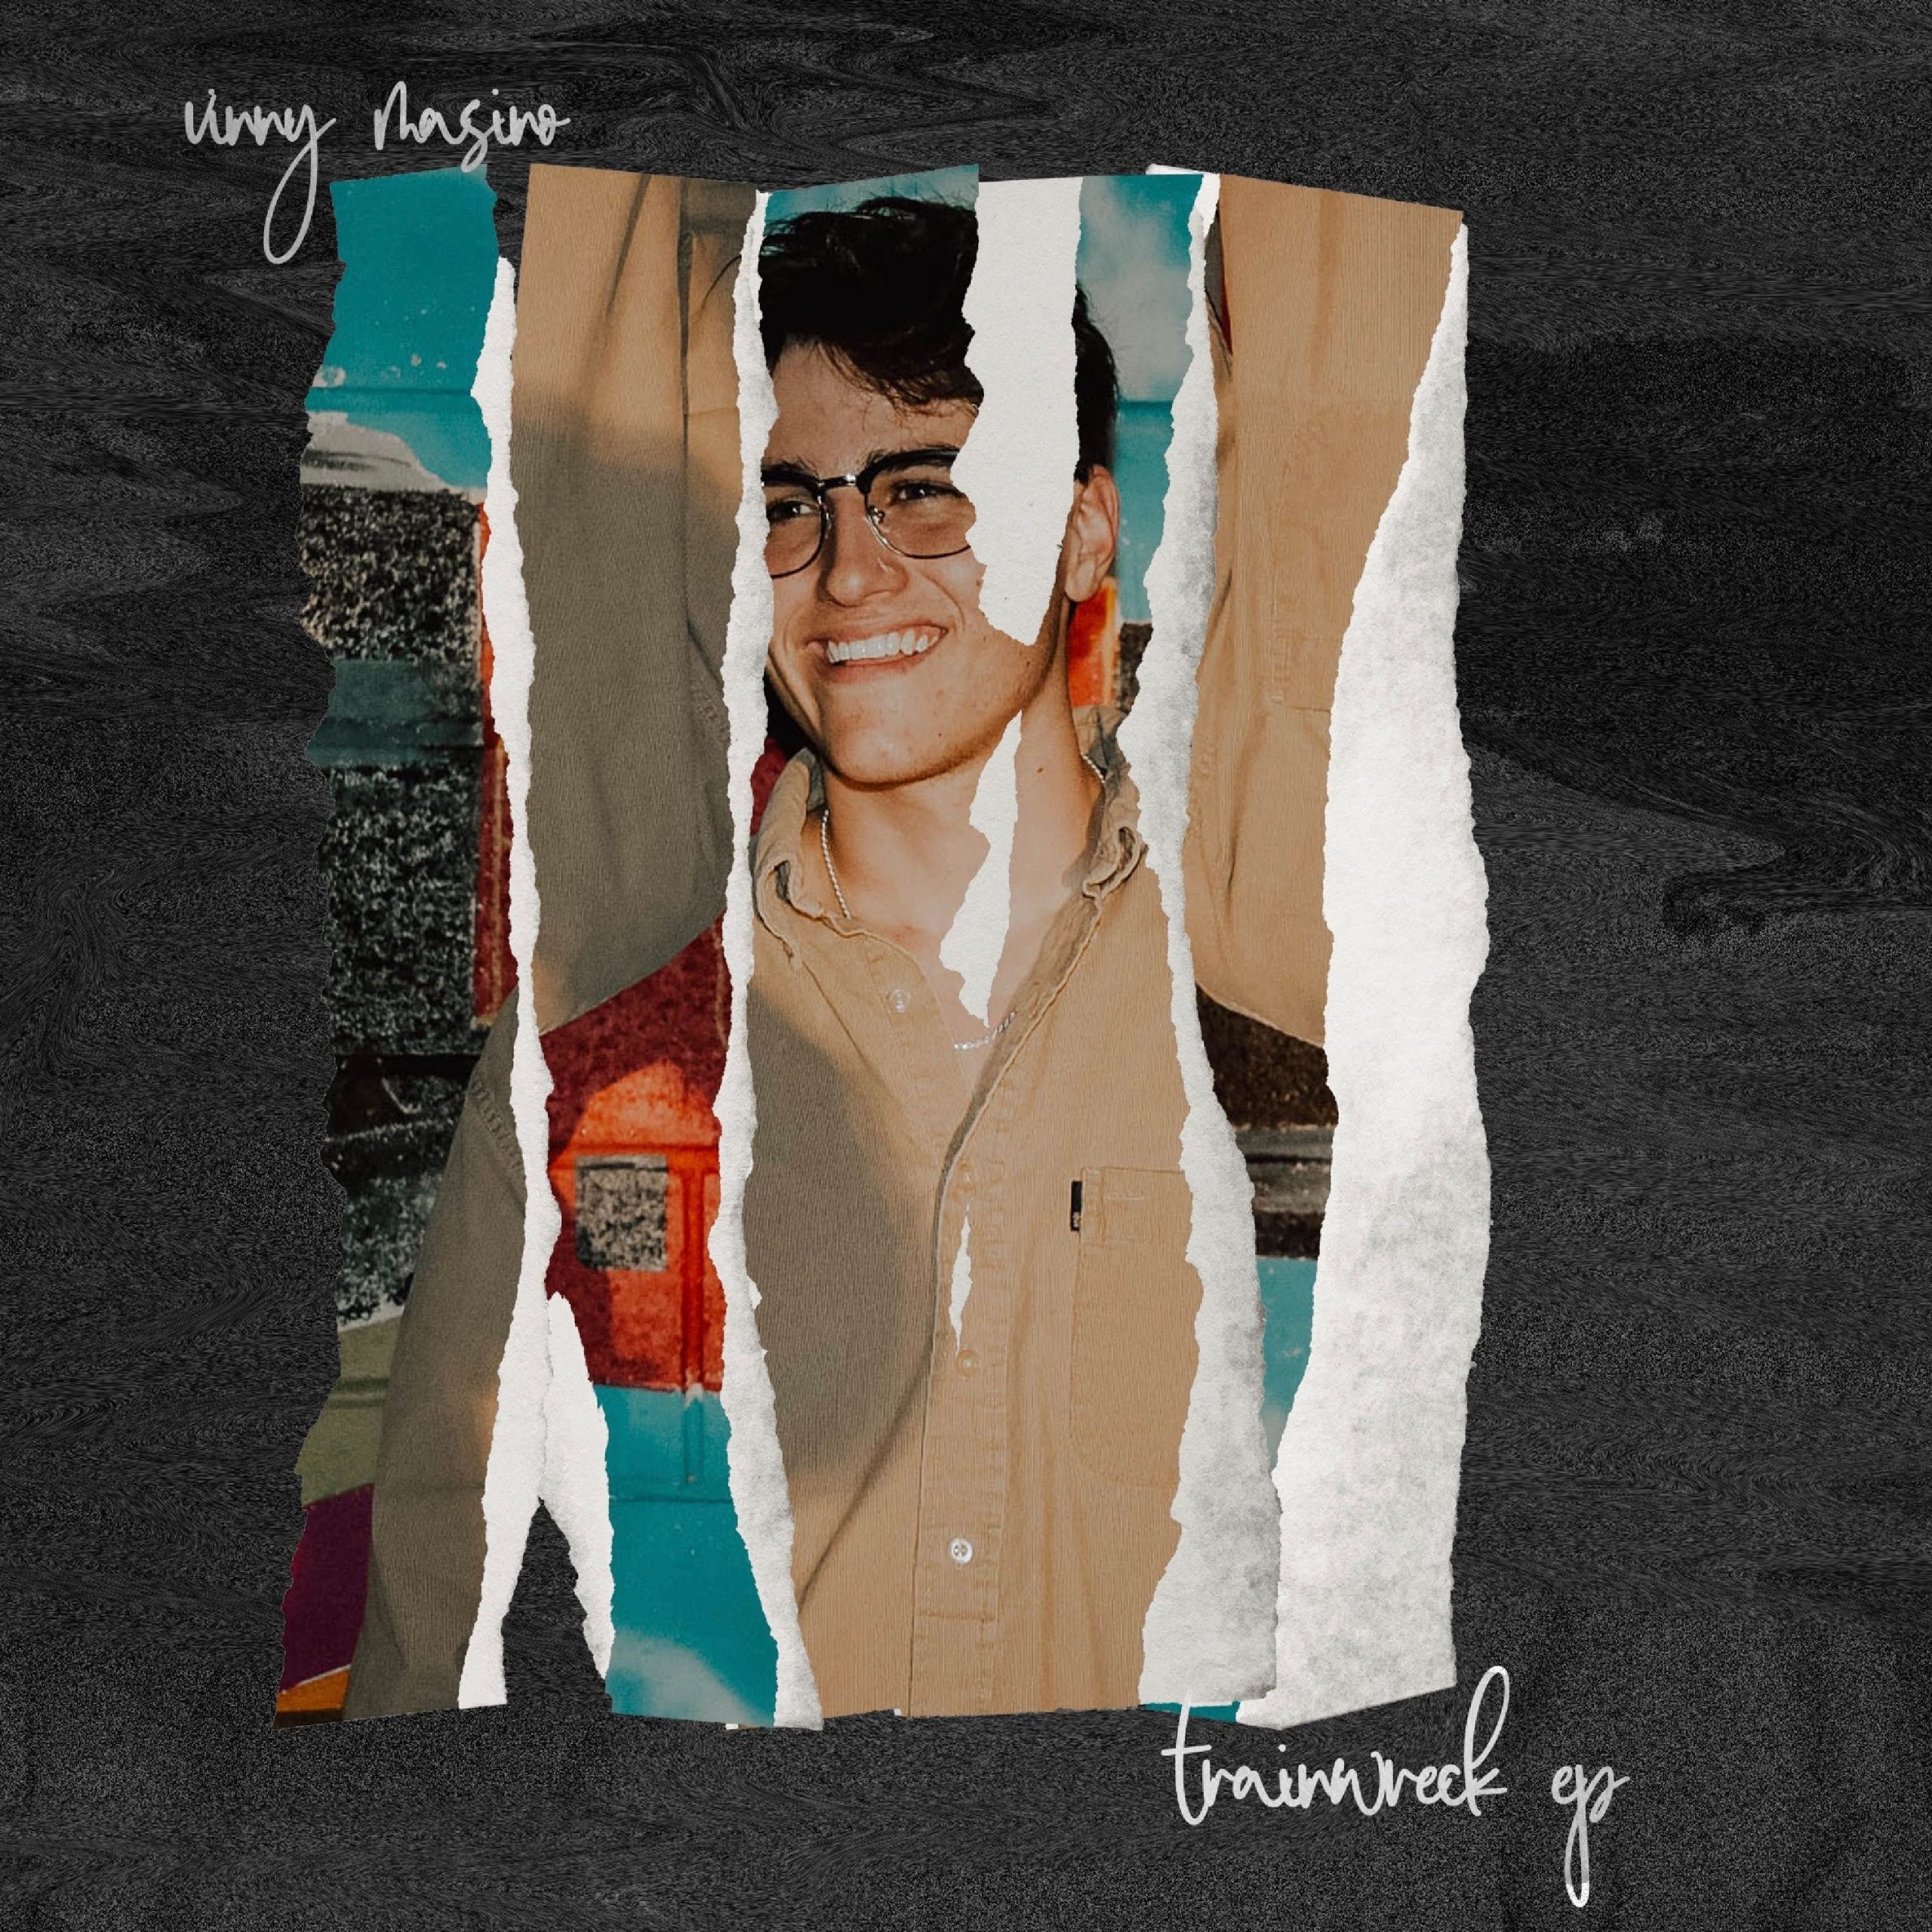 Trainwreck is the new EP by Vinny Masino that deals with dealing with the challenging 2020